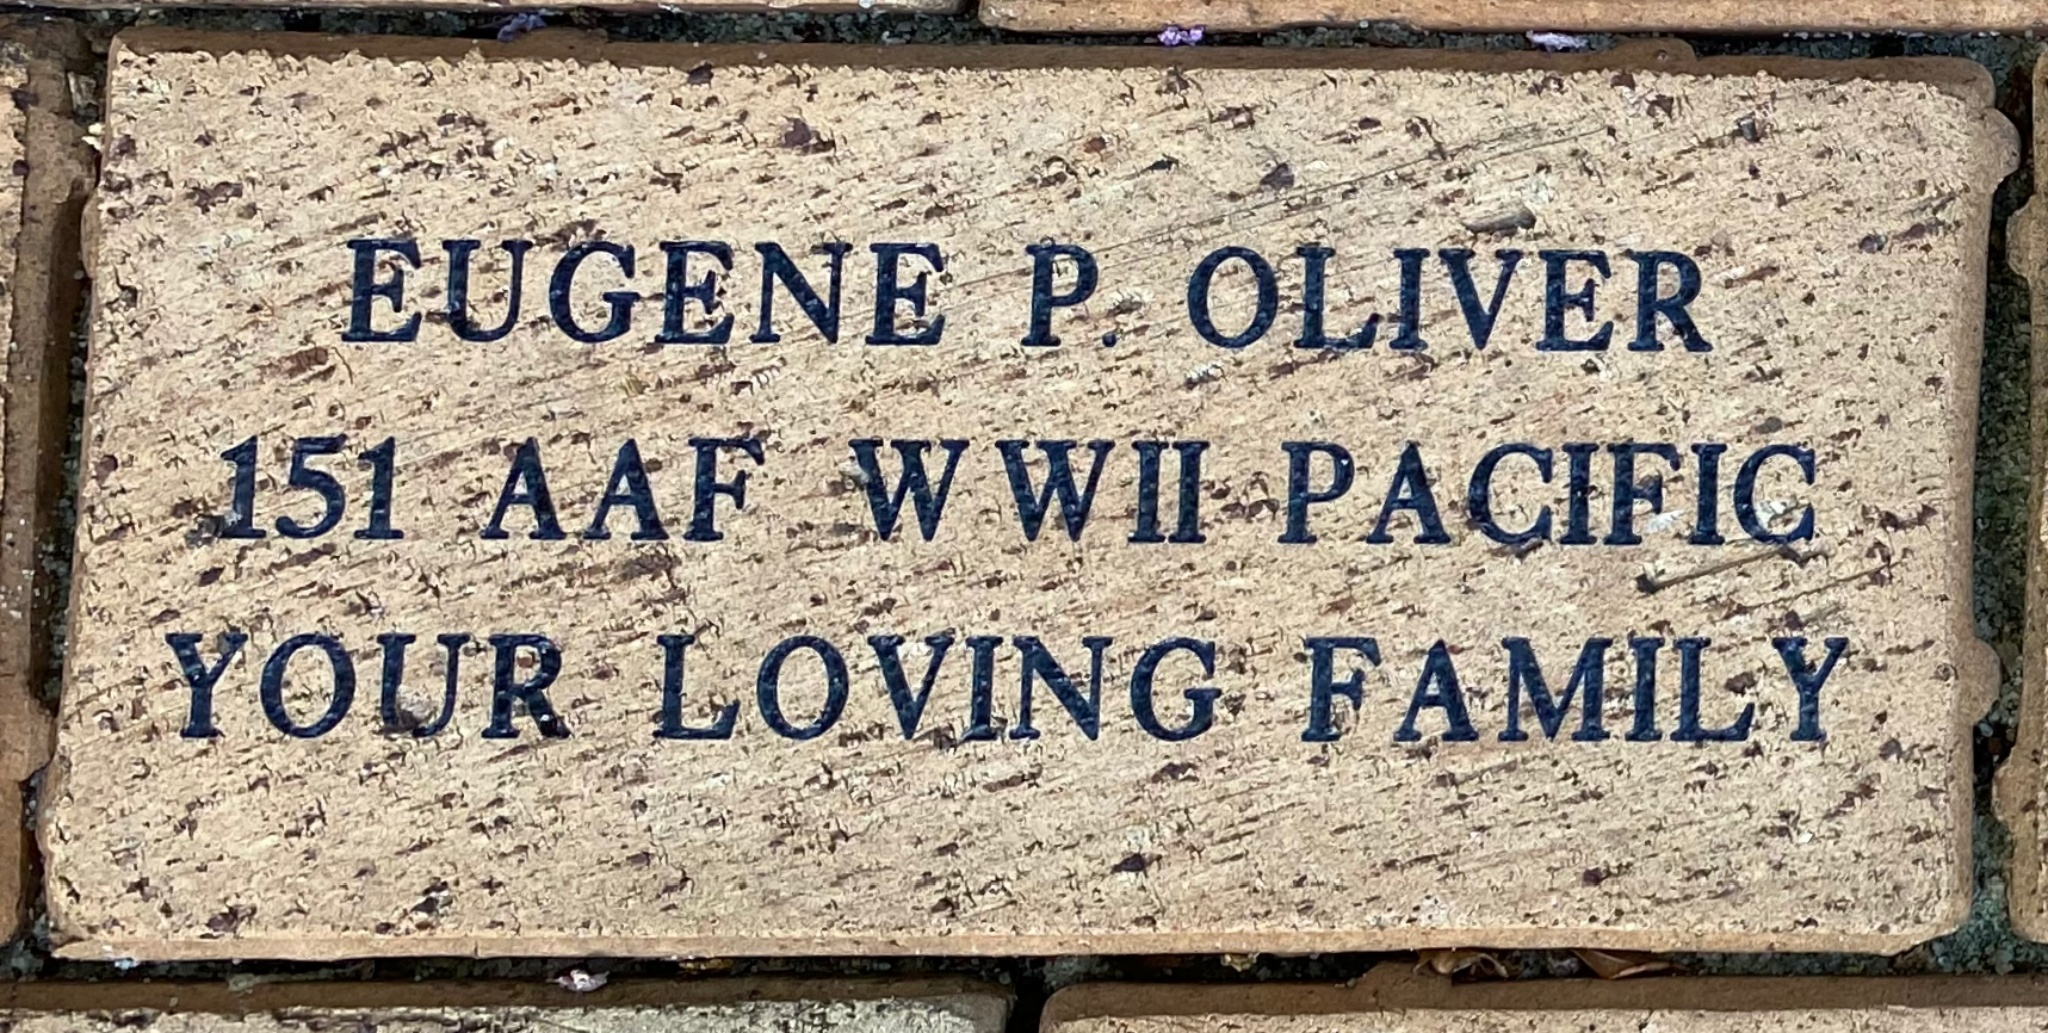 EUGENE P OLIVER 151 AAF WWII PACIFIC YOUR LOVING FAMILY